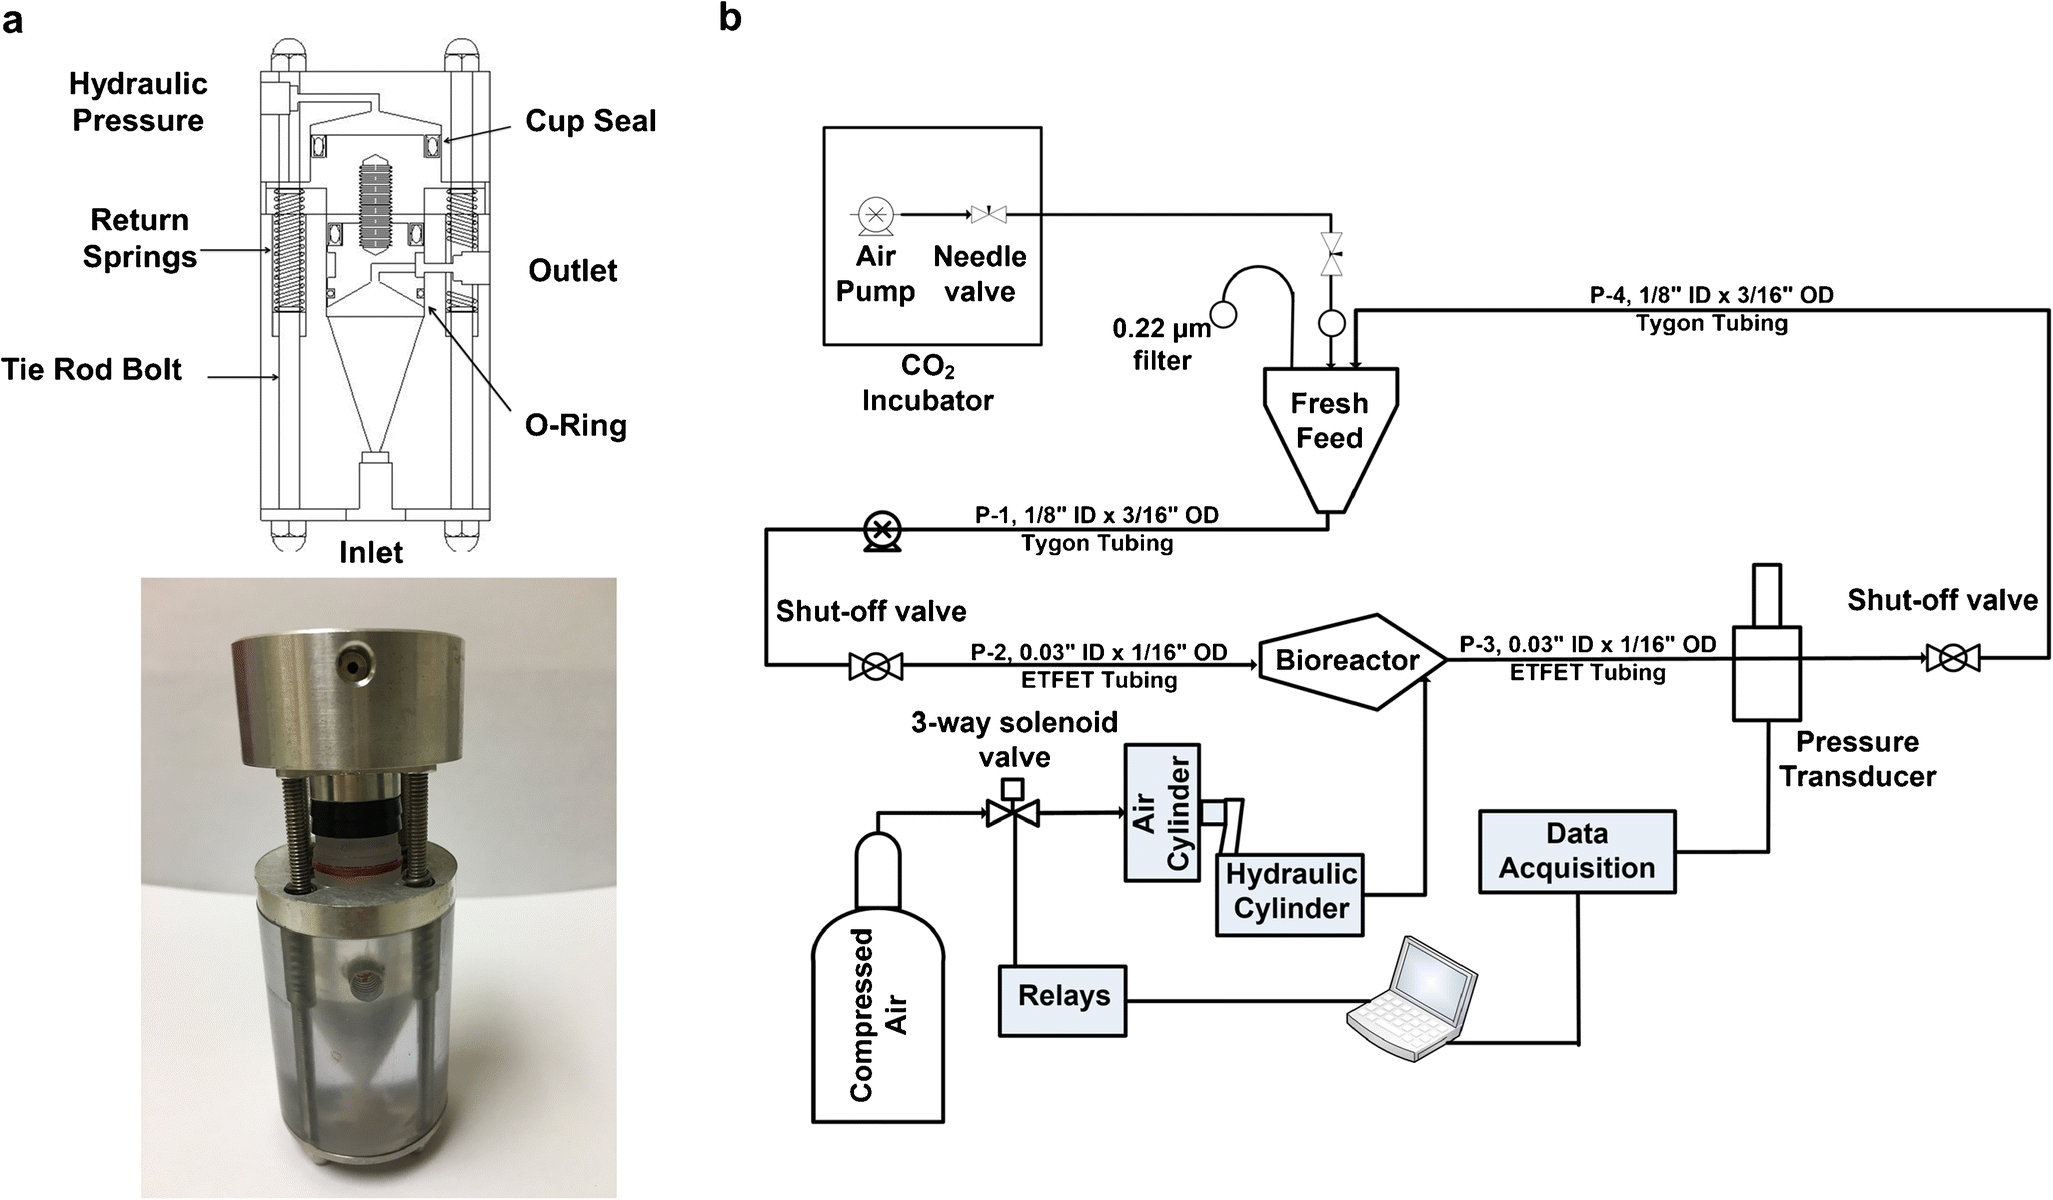 Correction To Combined Effects Of Oscillating Hydrostatic Pressure Process Flow Diagram Html Polycarbonate B Perfusion Pressurized Computer Controlled Bioreactor System Schematic In Fig 2a And Bottom Portion